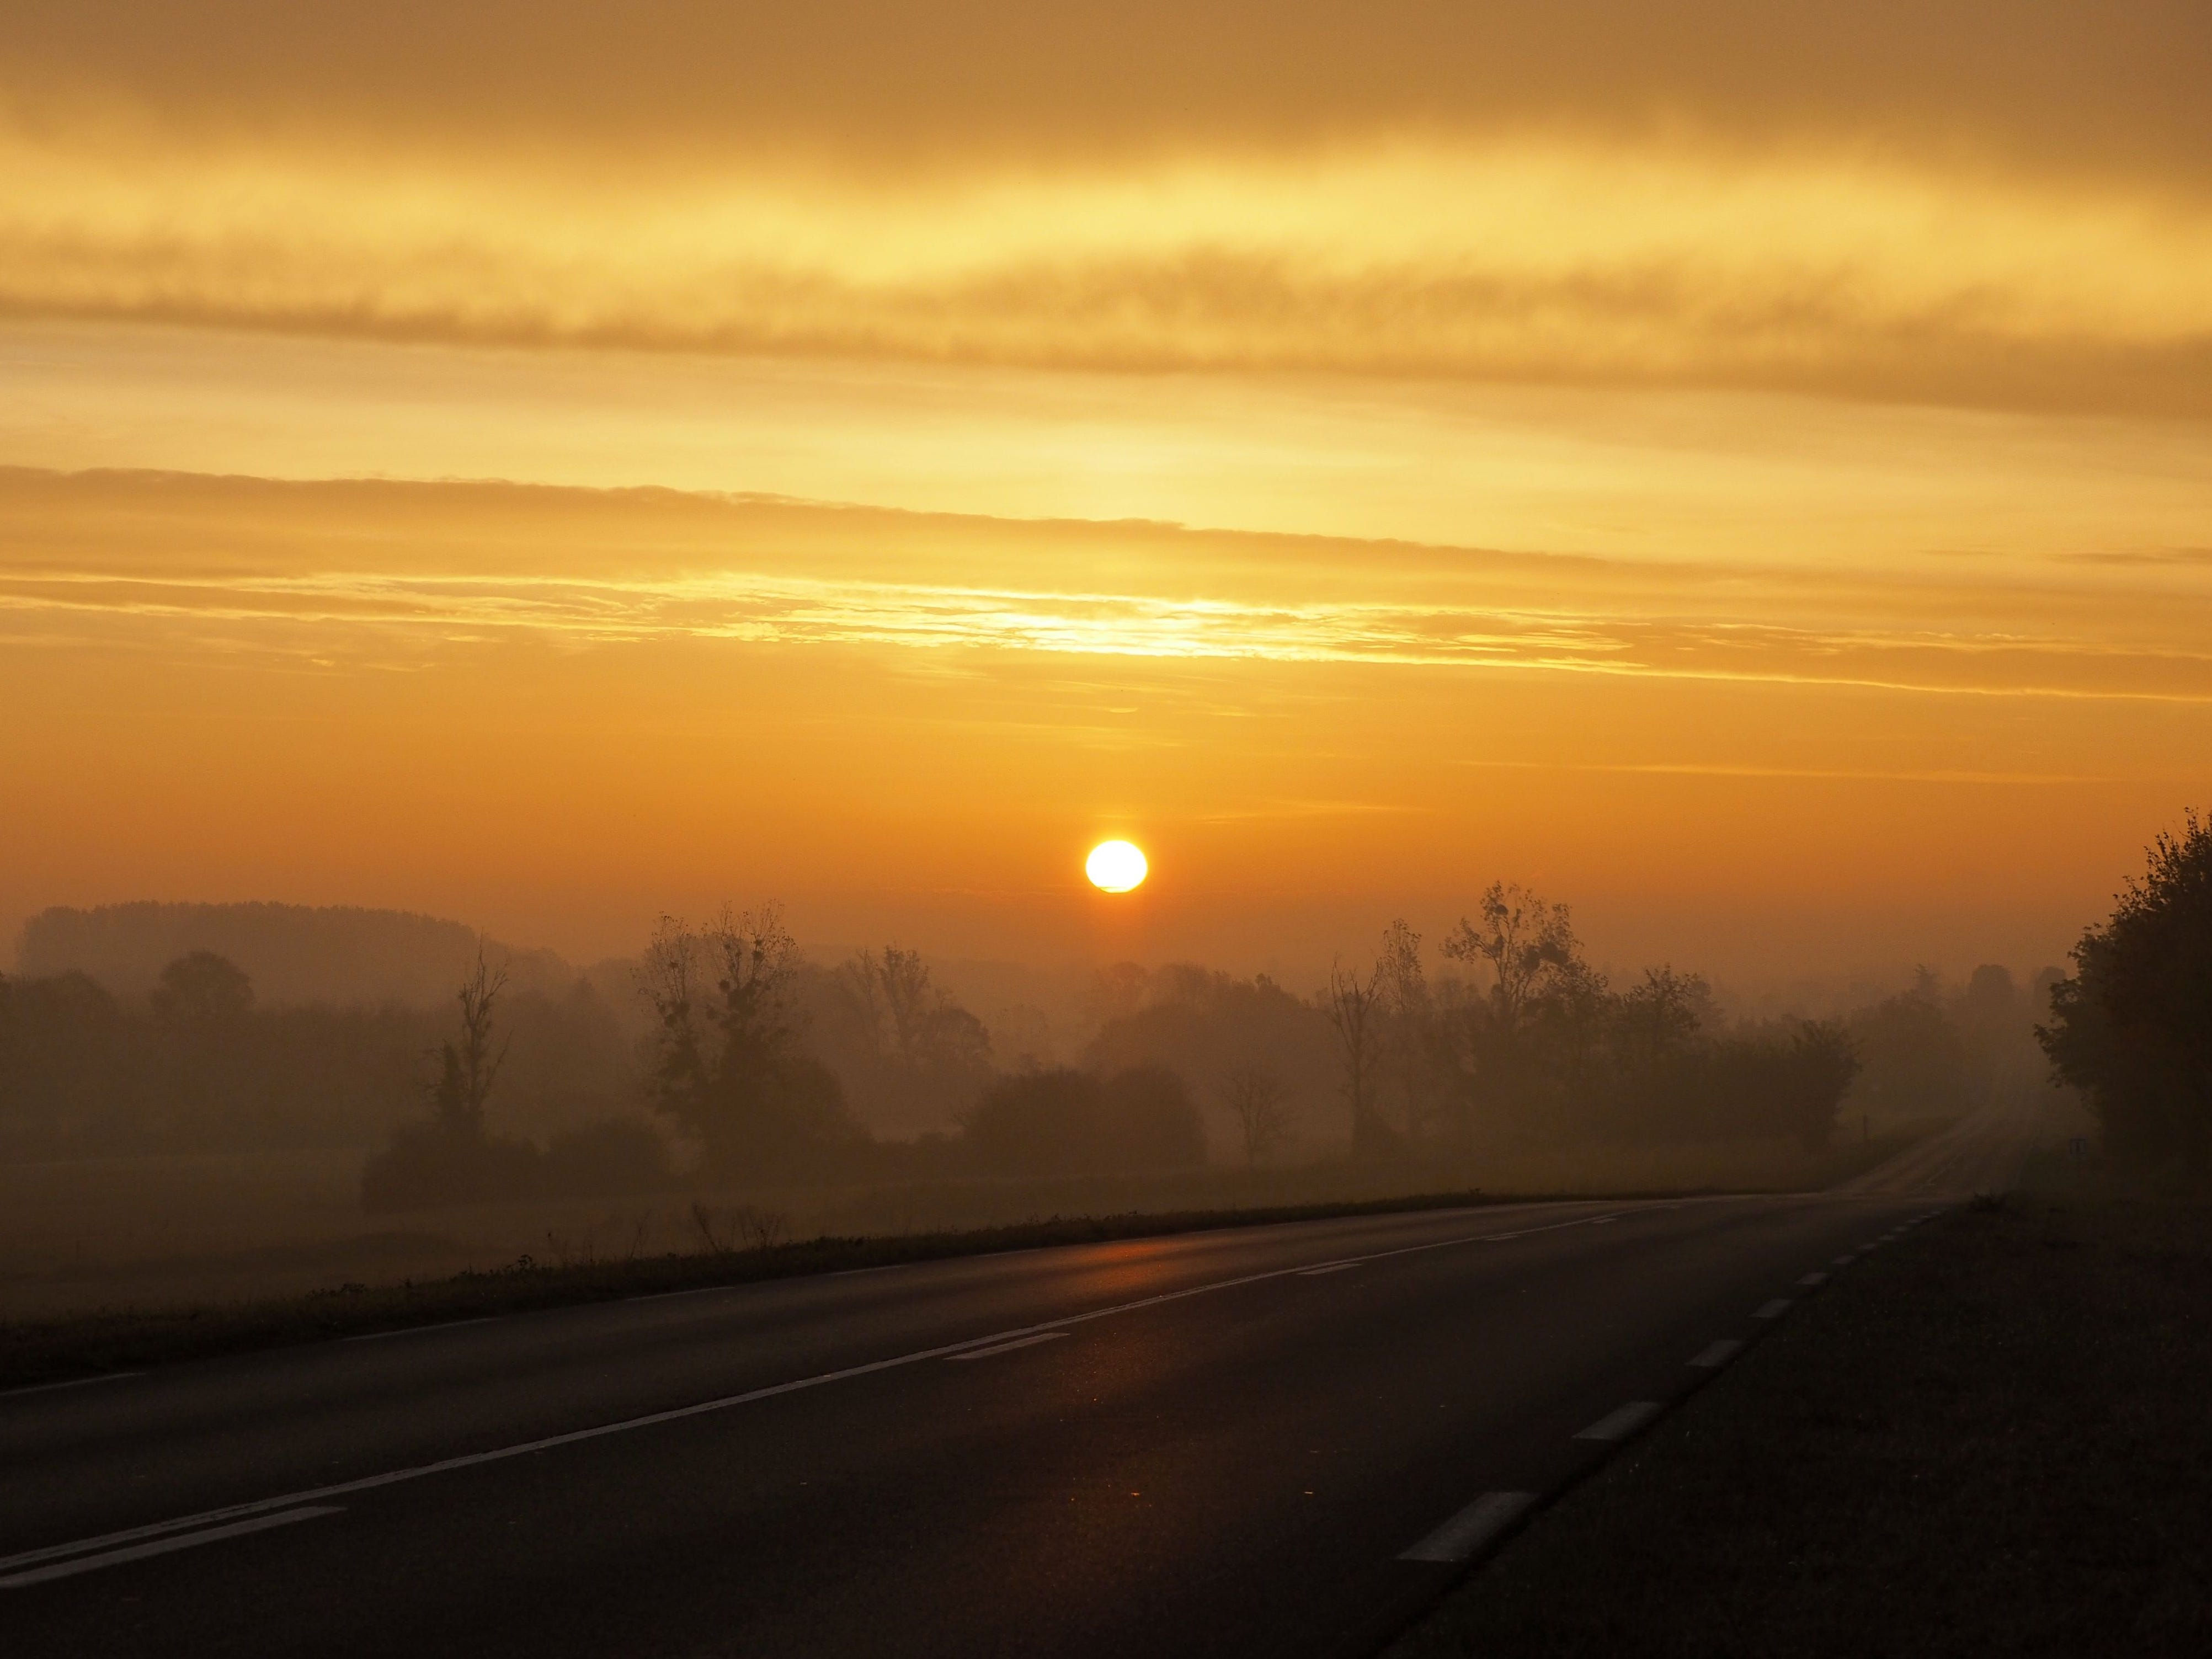 The sun rises over fields along a road near Chateauroux, central France, on Nov. 4, 2018.